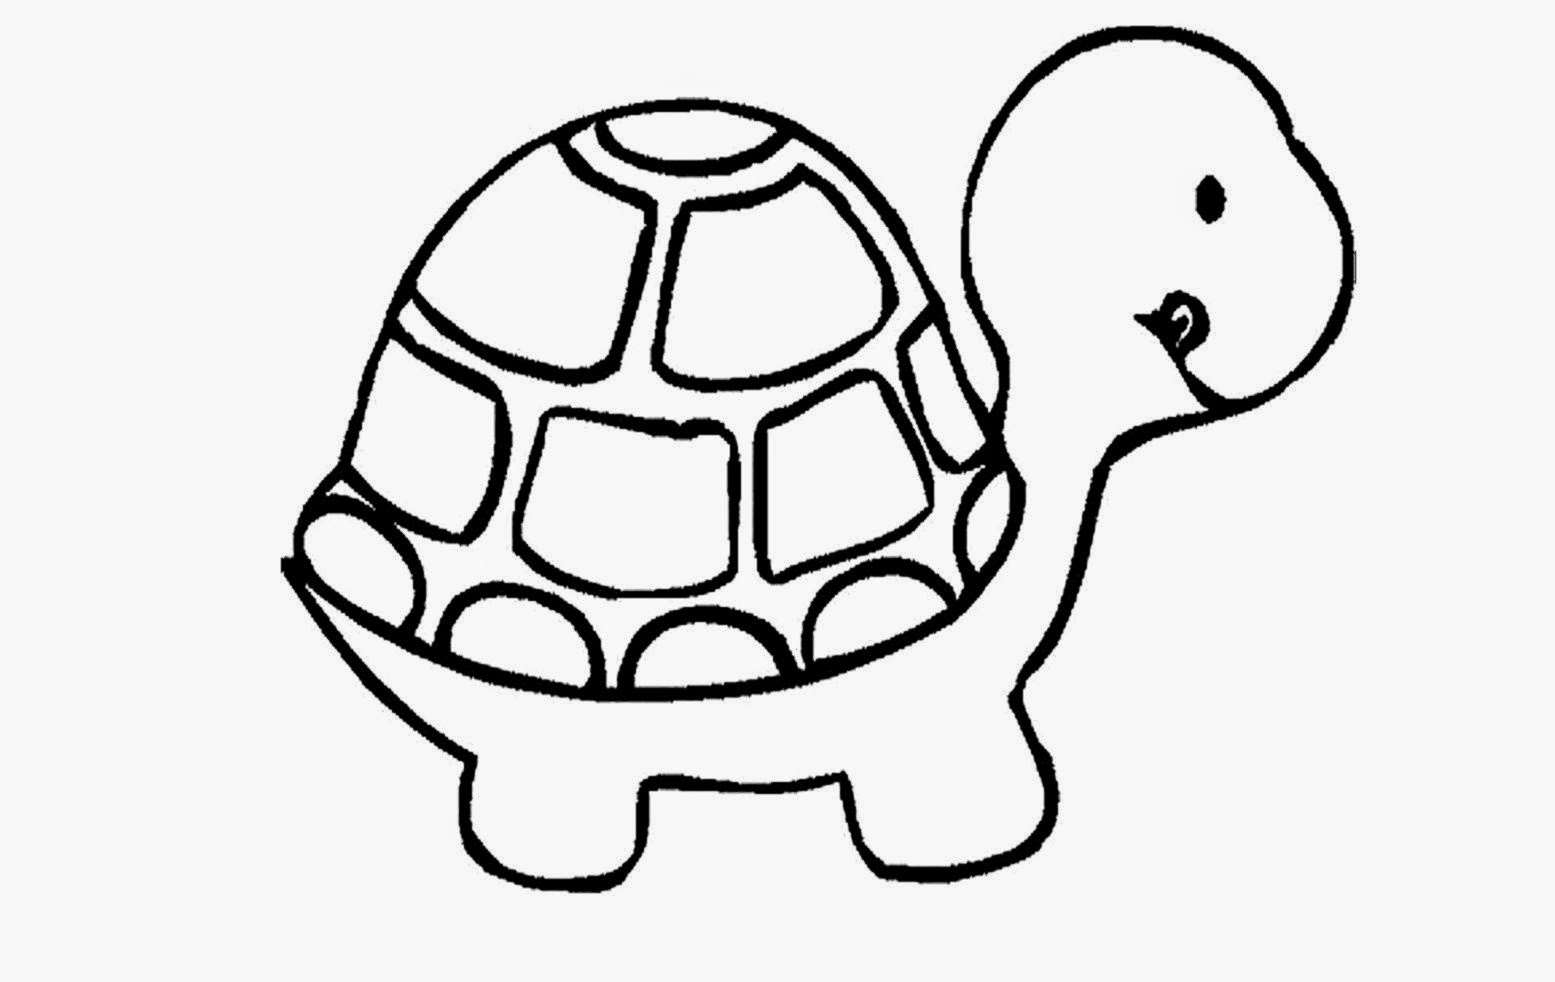 1555x982 Coloring Pages Printable. Cool Pictures For Kids To Learn Coloring